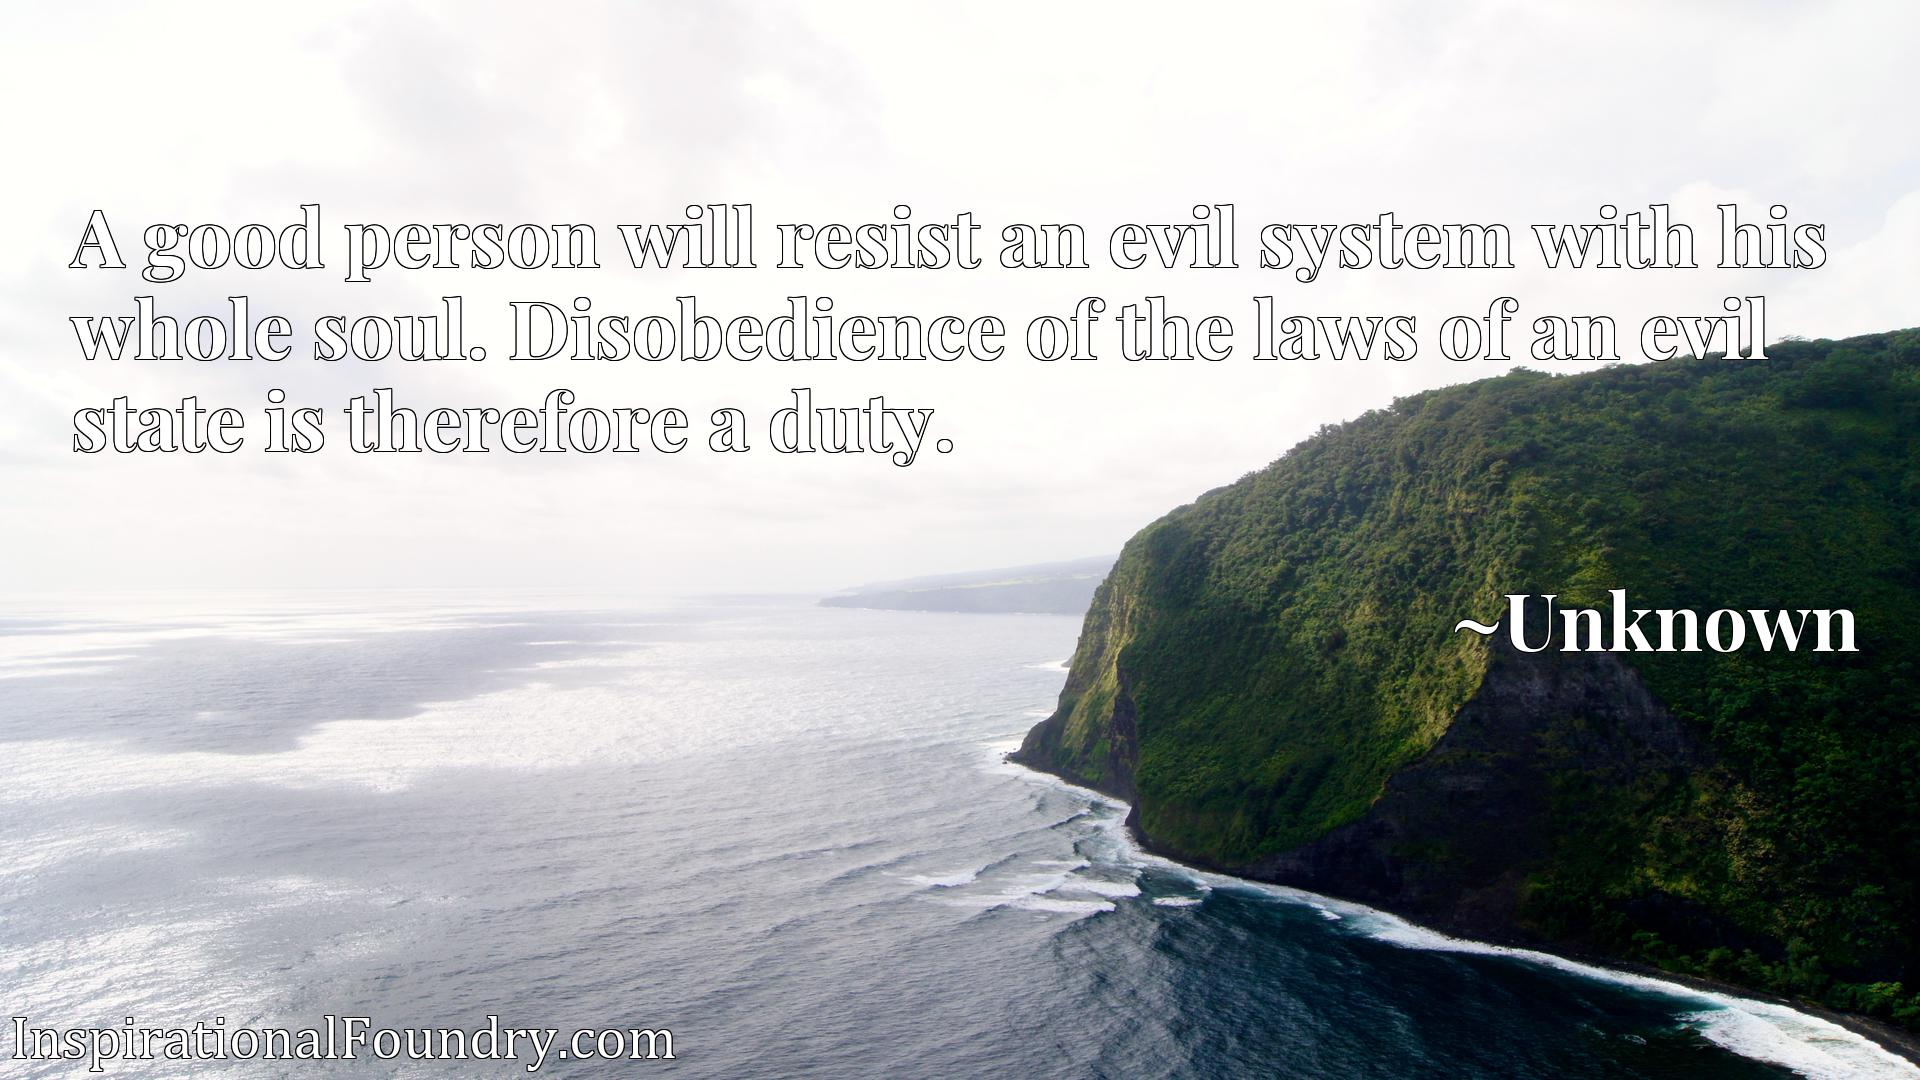 A good person will resist an evil system with his whole soul. Disobedience of the laws of an evil state is therefore a duty.